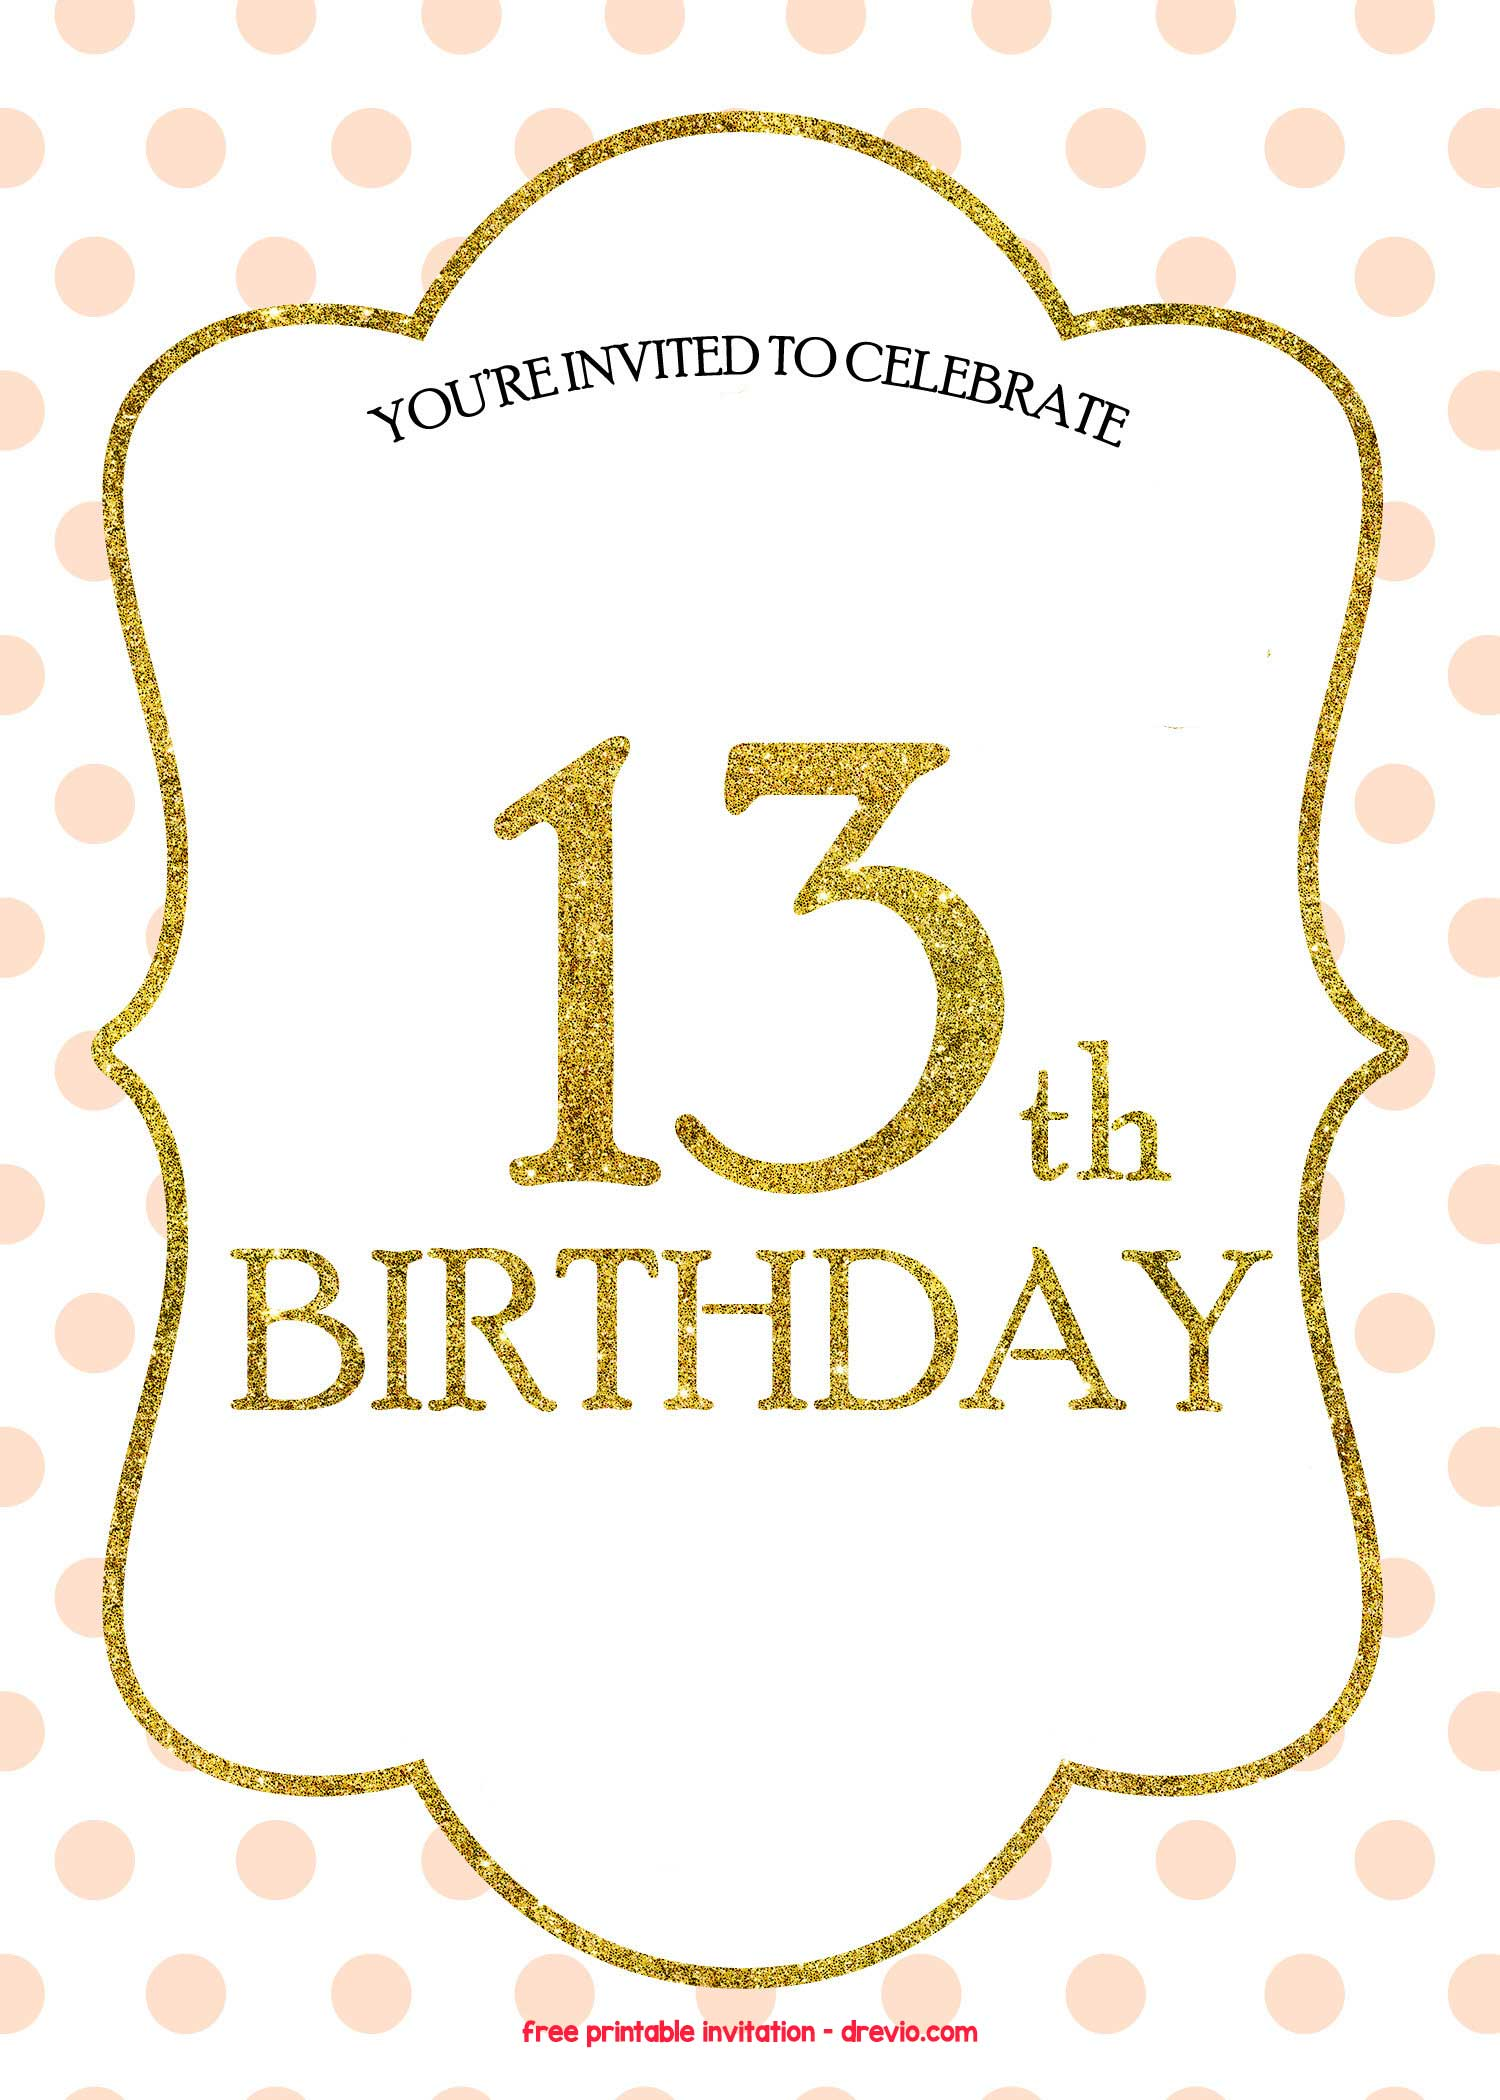 FREE 13th Birthday Invitations Templates FREE Invitation